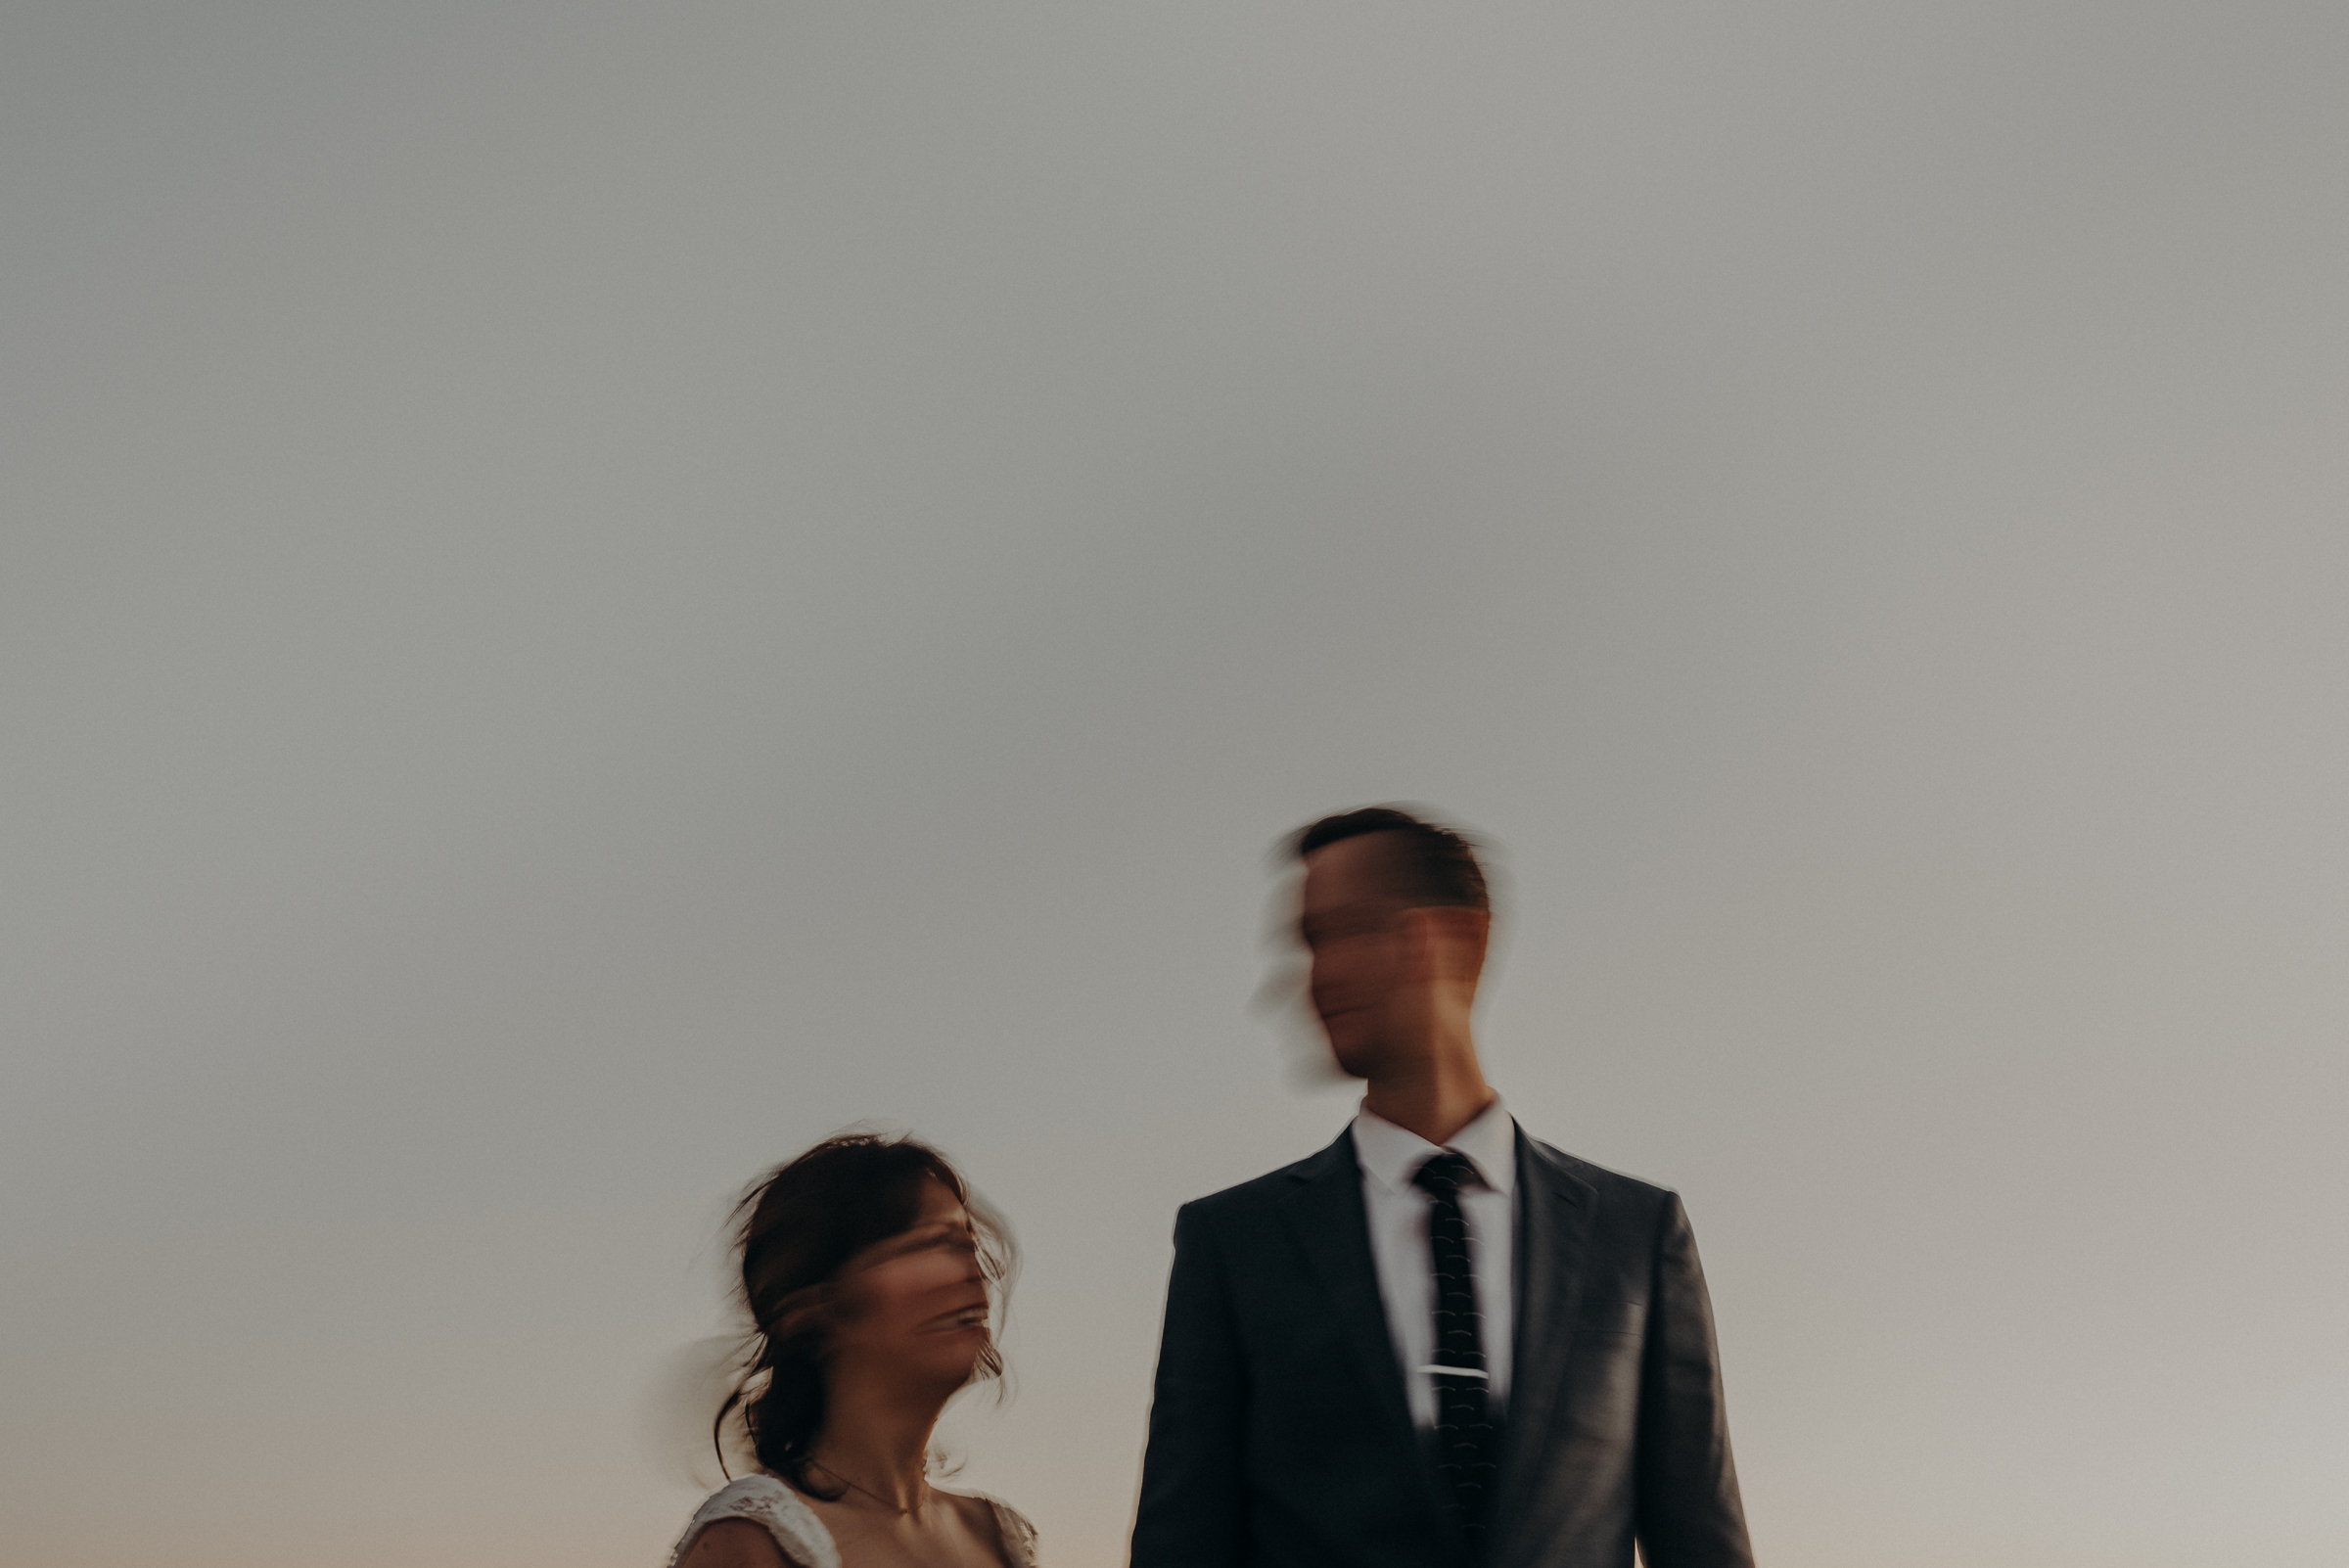 Joshua Tree Elopement - Los Angeles Wedding Photographers - IsaiahAndTaylor.com-126.jpg